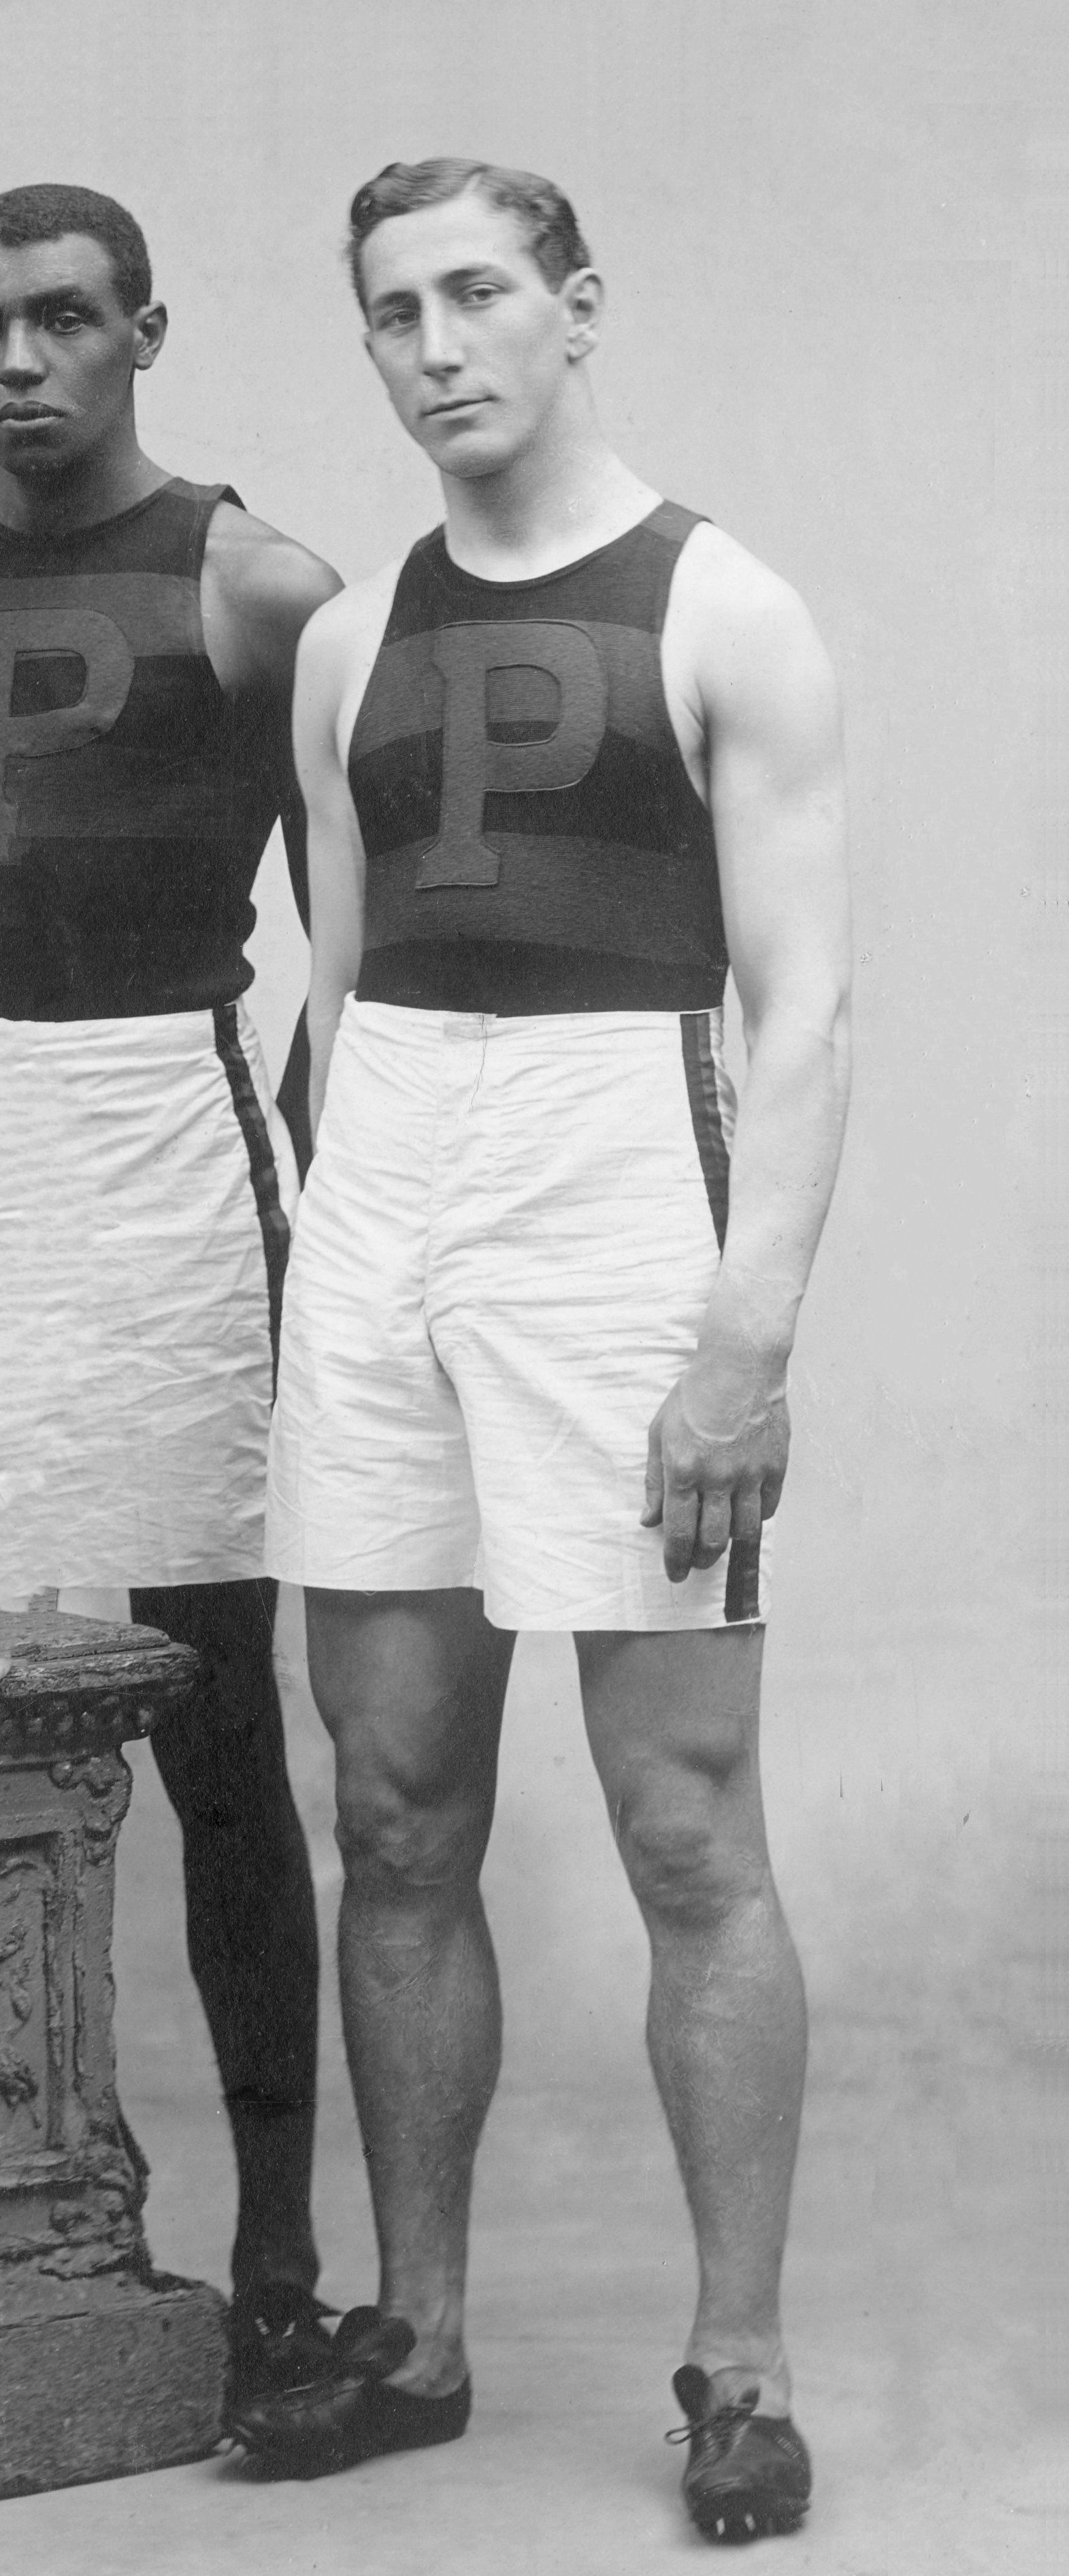 A white male stands and faces the camera in an older photograph. His right hand is behind his back. He is wearing a stripped sleeveless athletic top with a P on the front, white athletic shorts, and running shoes.